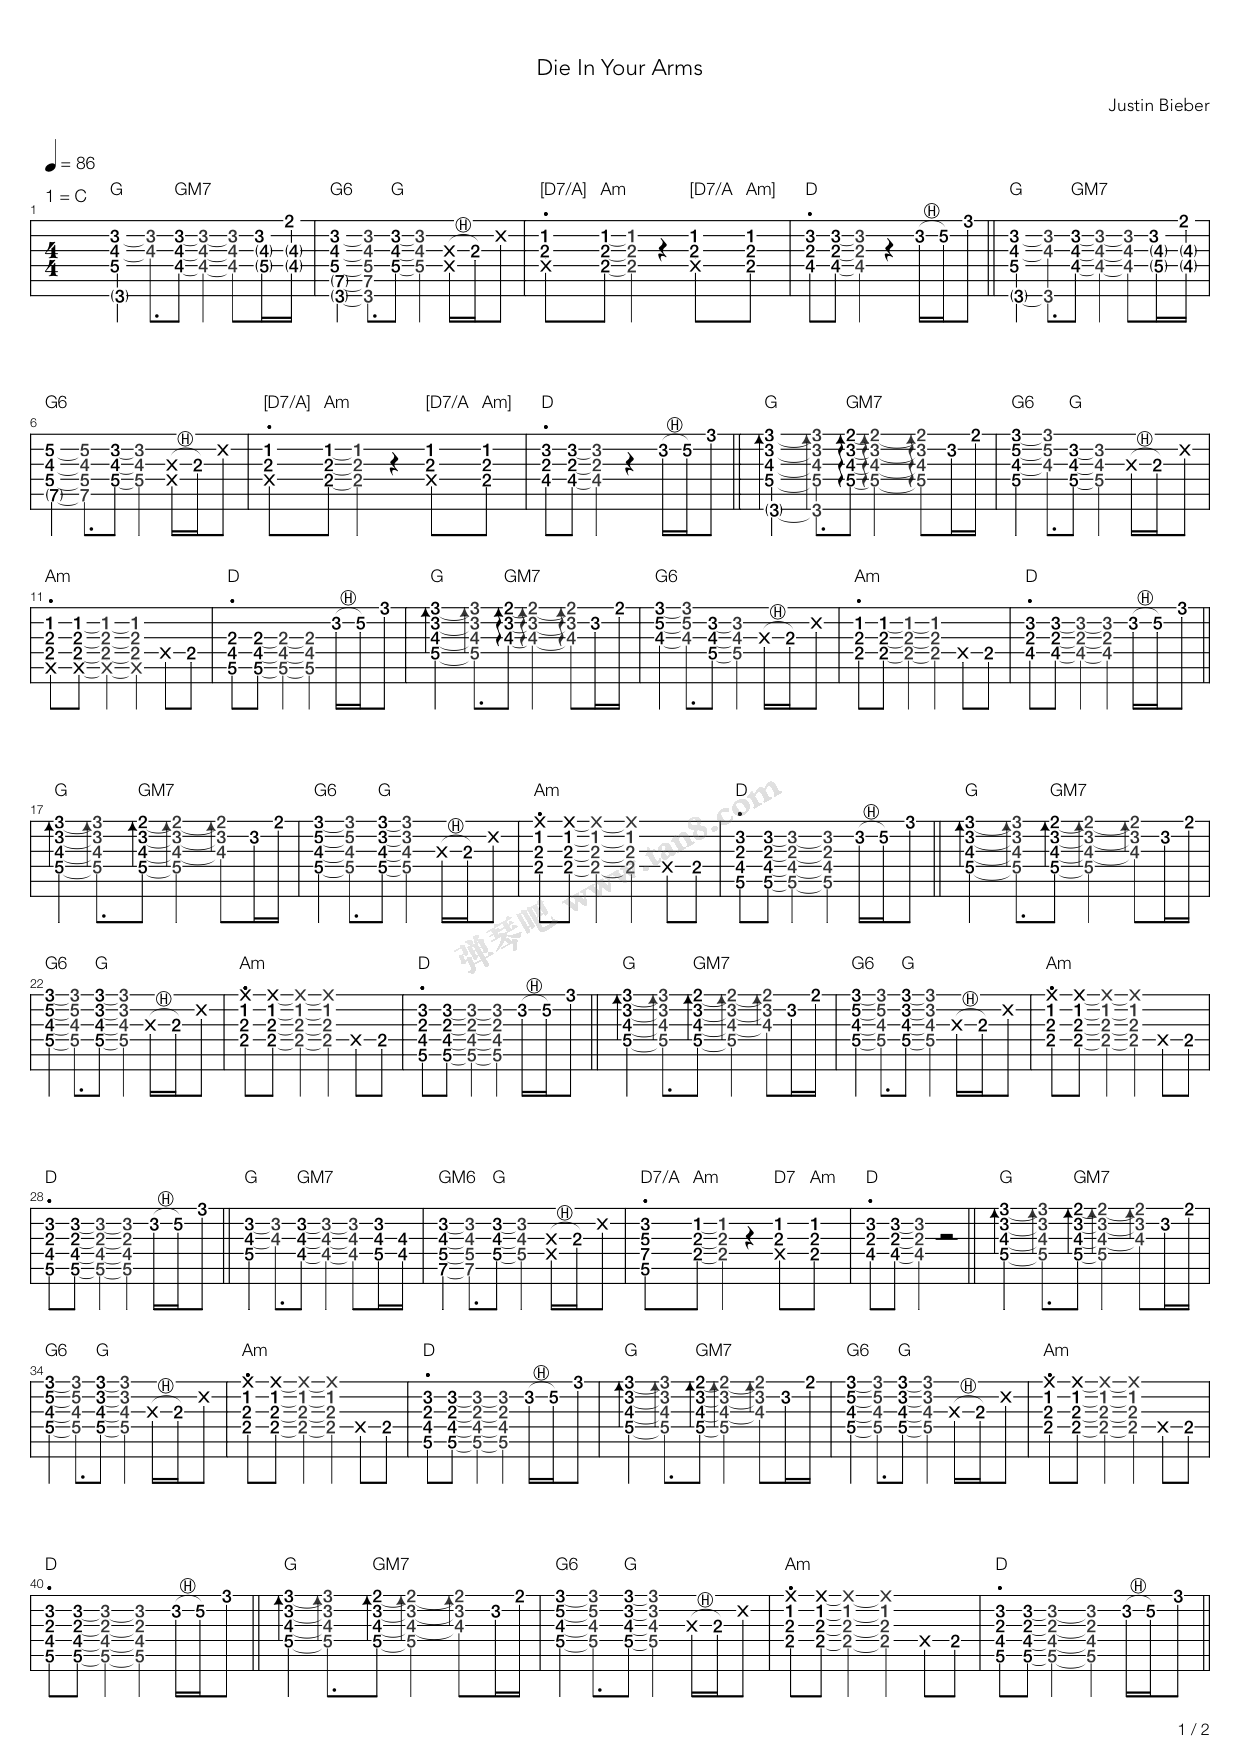 Die In Your Arms By Justin Bieber Guitar Tabs Chords Sheet Music